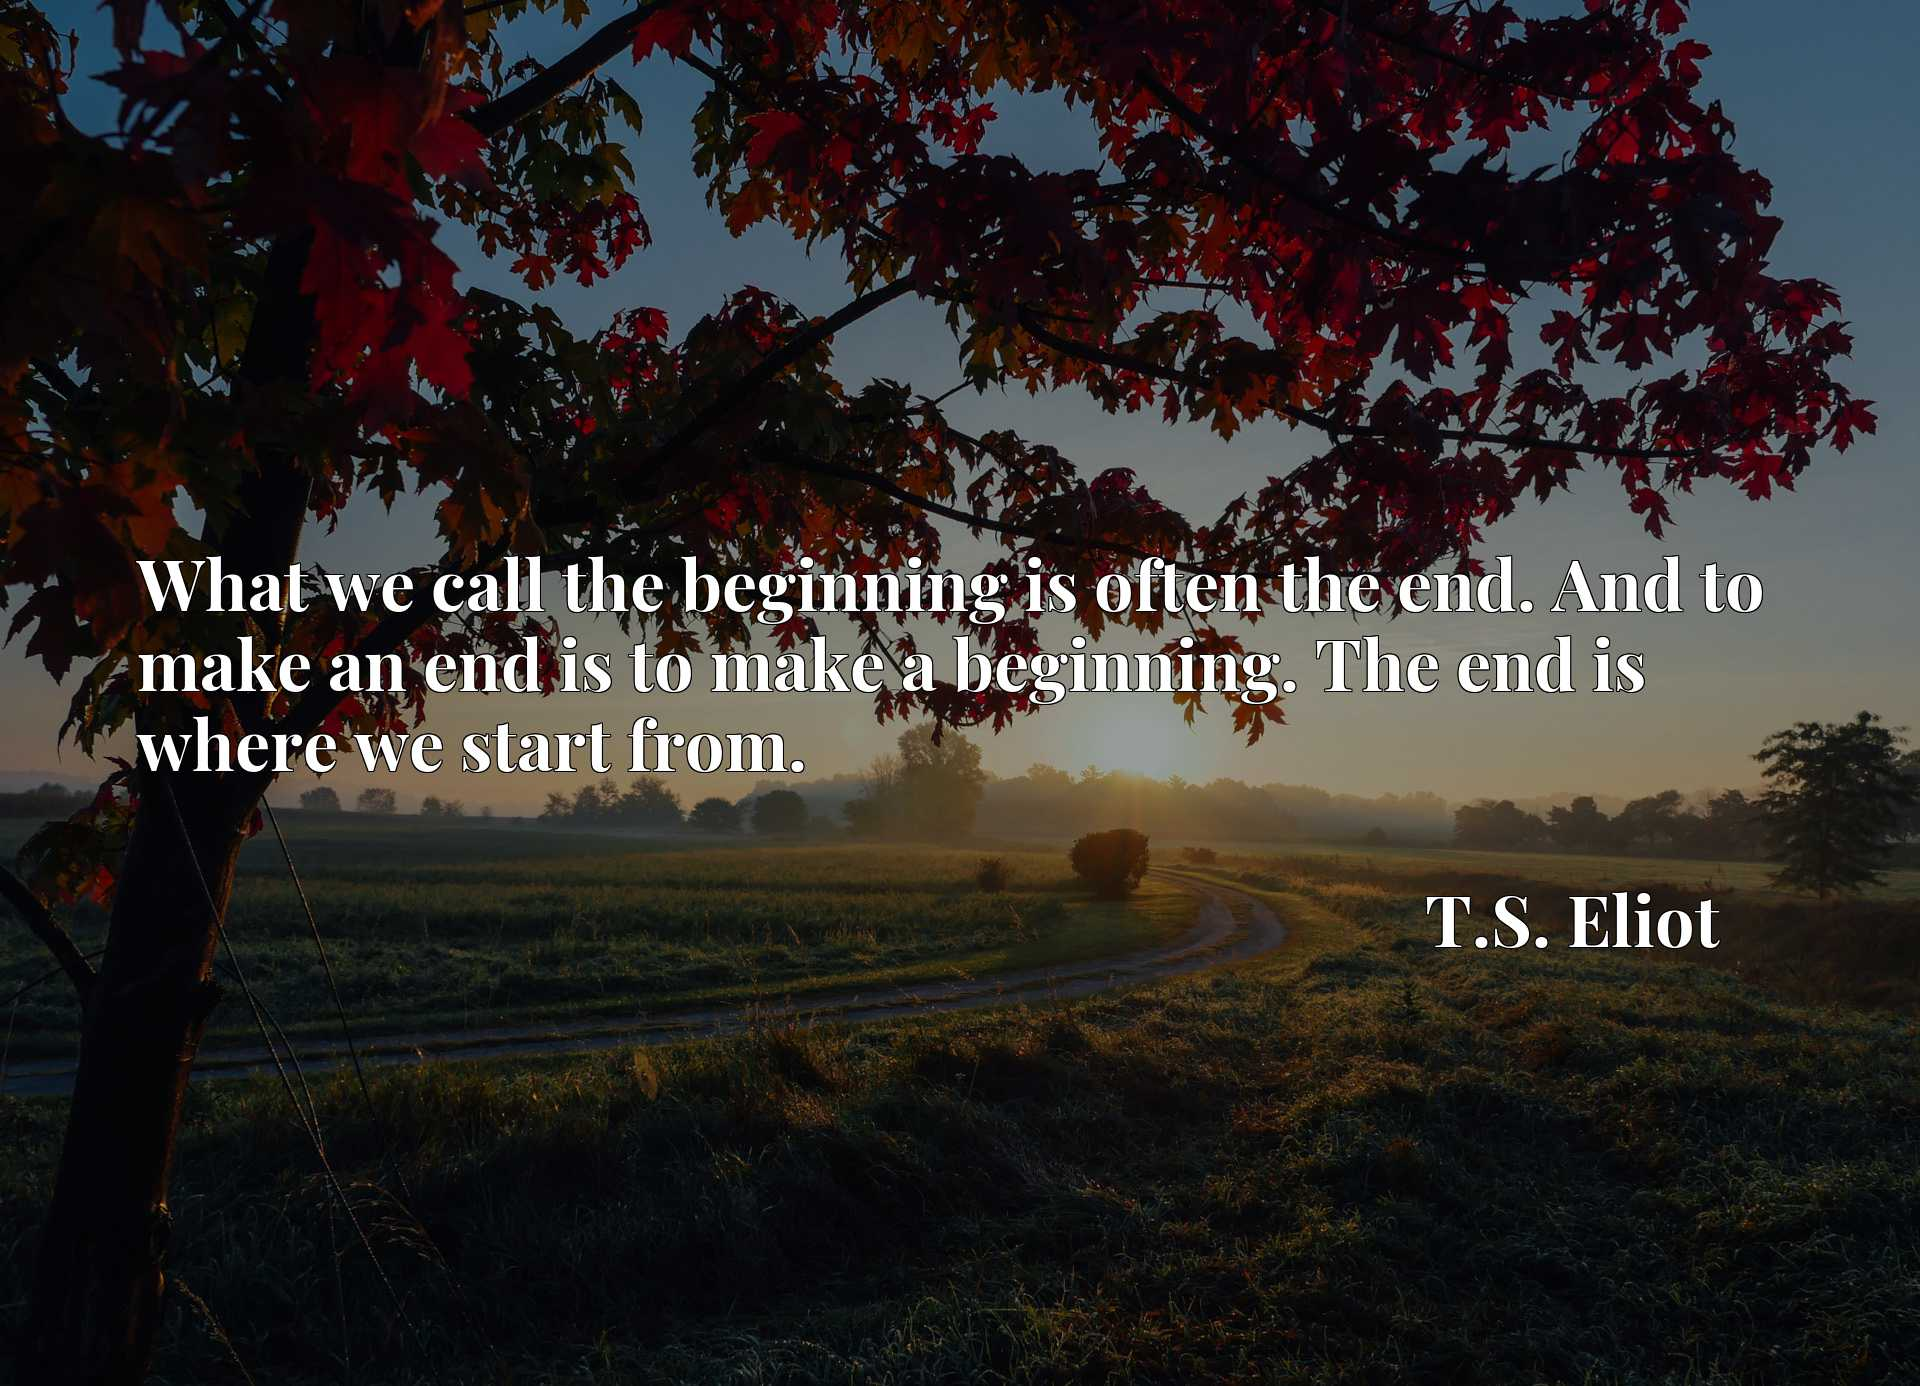 Quote Picture :What we call the beginning is often the end. And to make an end is to make a beginning. The end is where we start from.